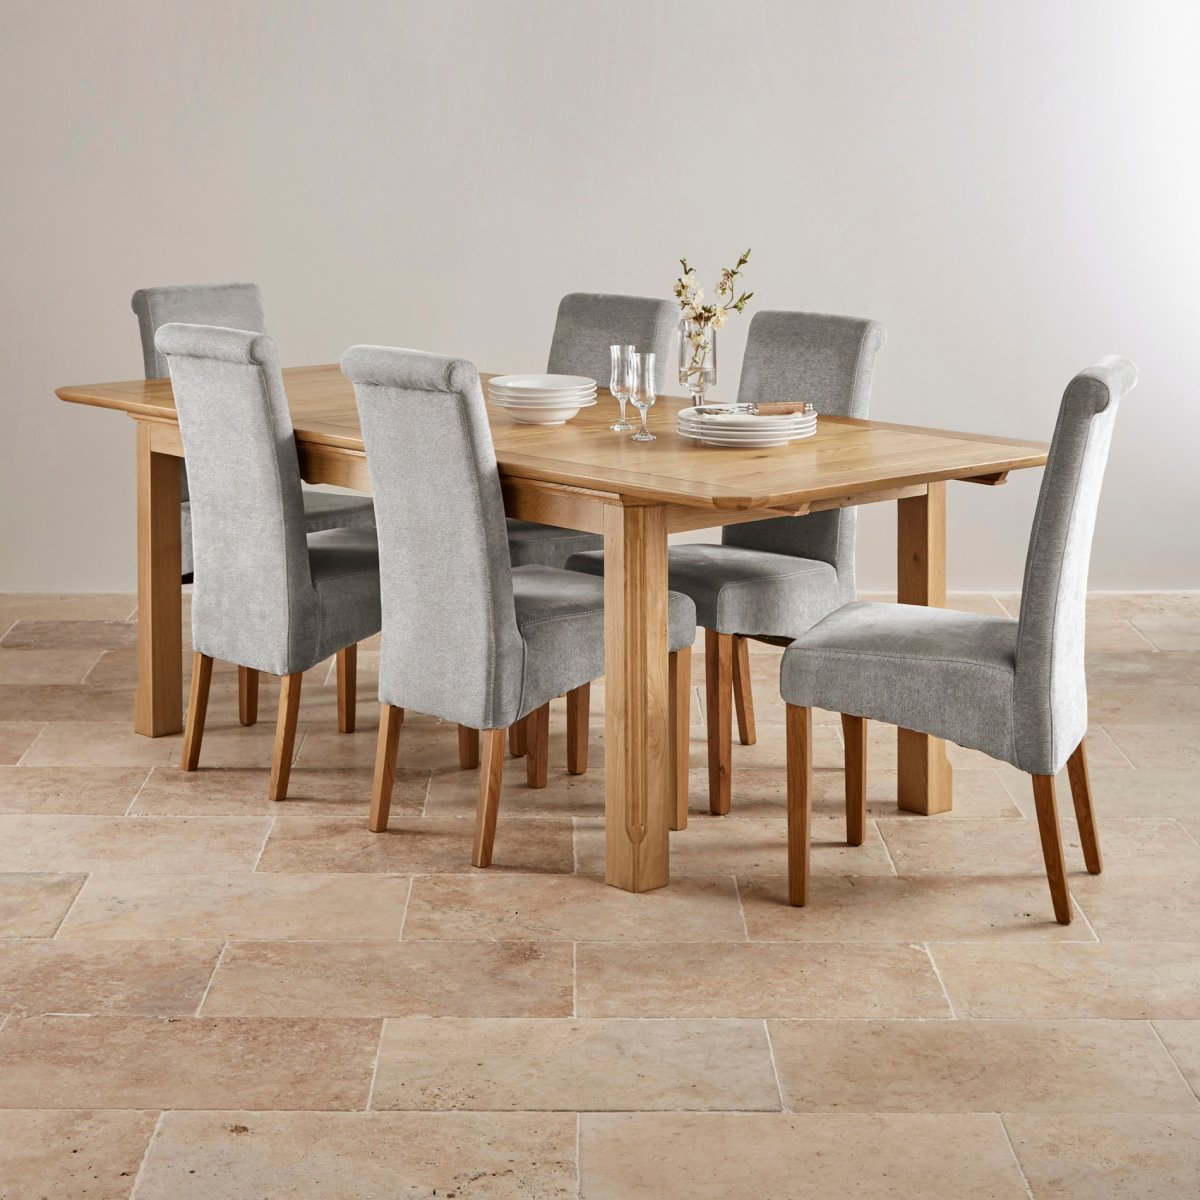 Edinburgh Extending Dining Set In Oak: Dining Table + 6 Chairs